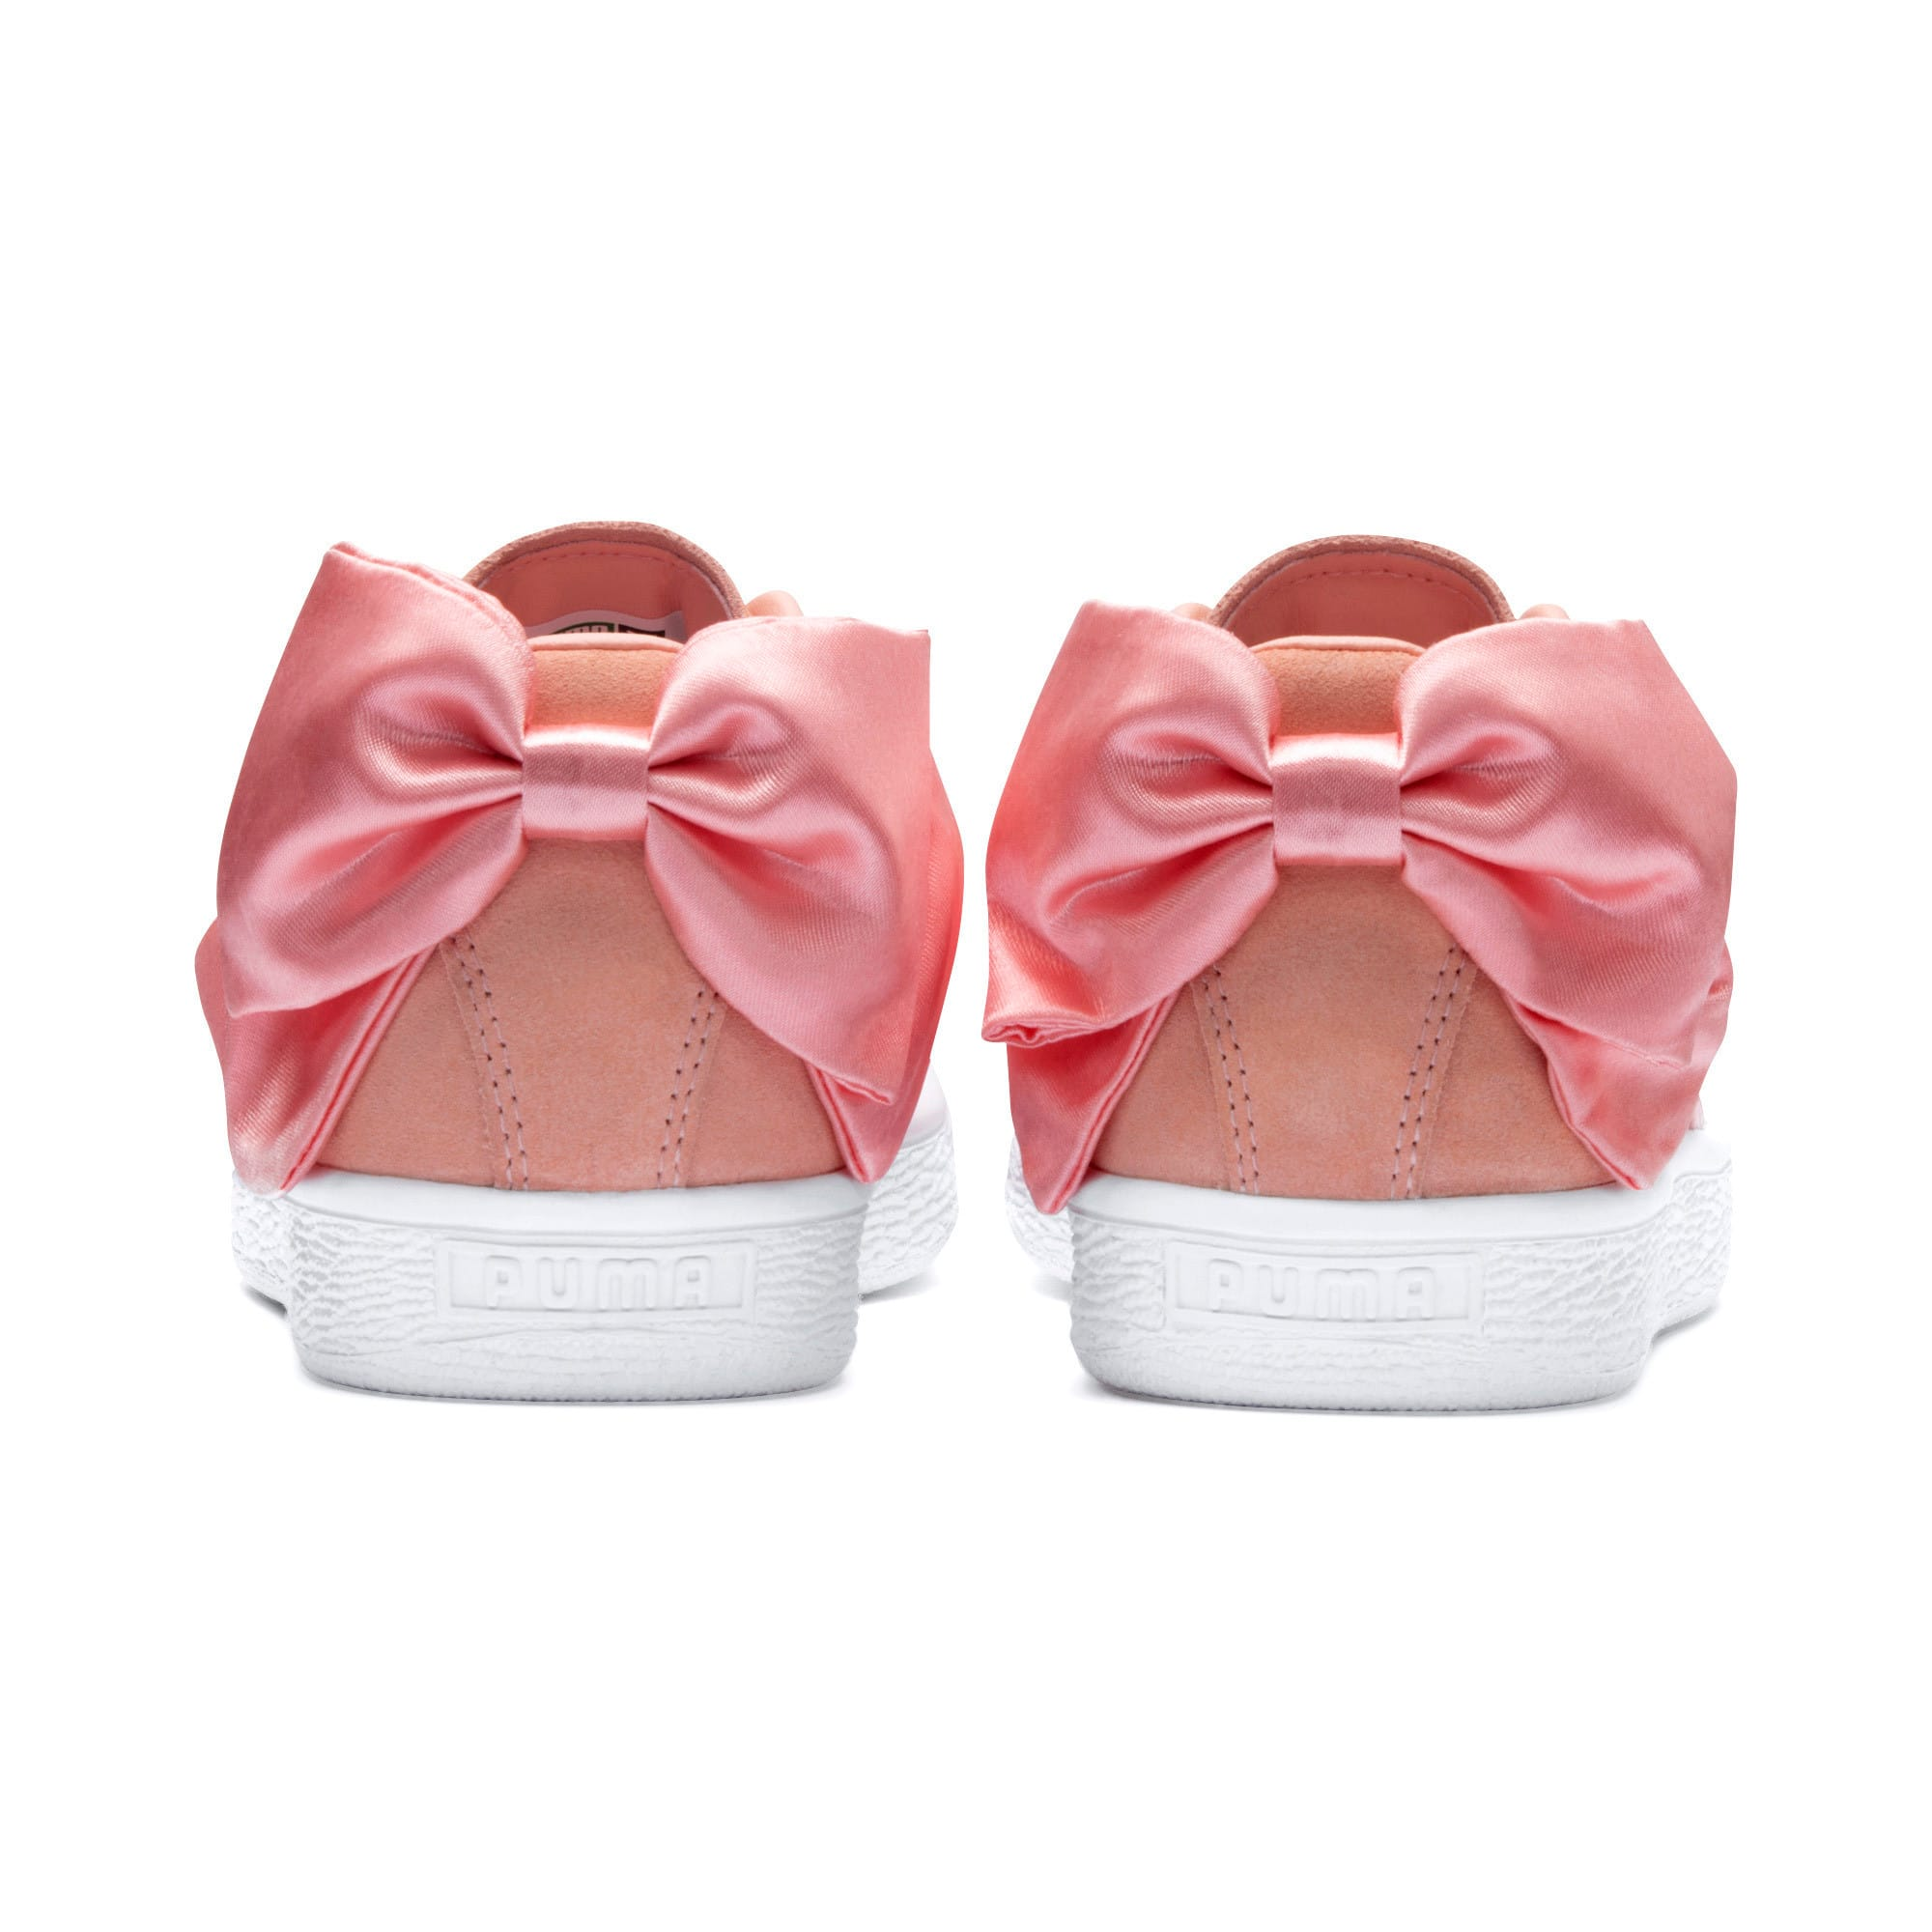 Thumbnail 3 of Suede Bow Damen, Peach Bud-Puma White, medium